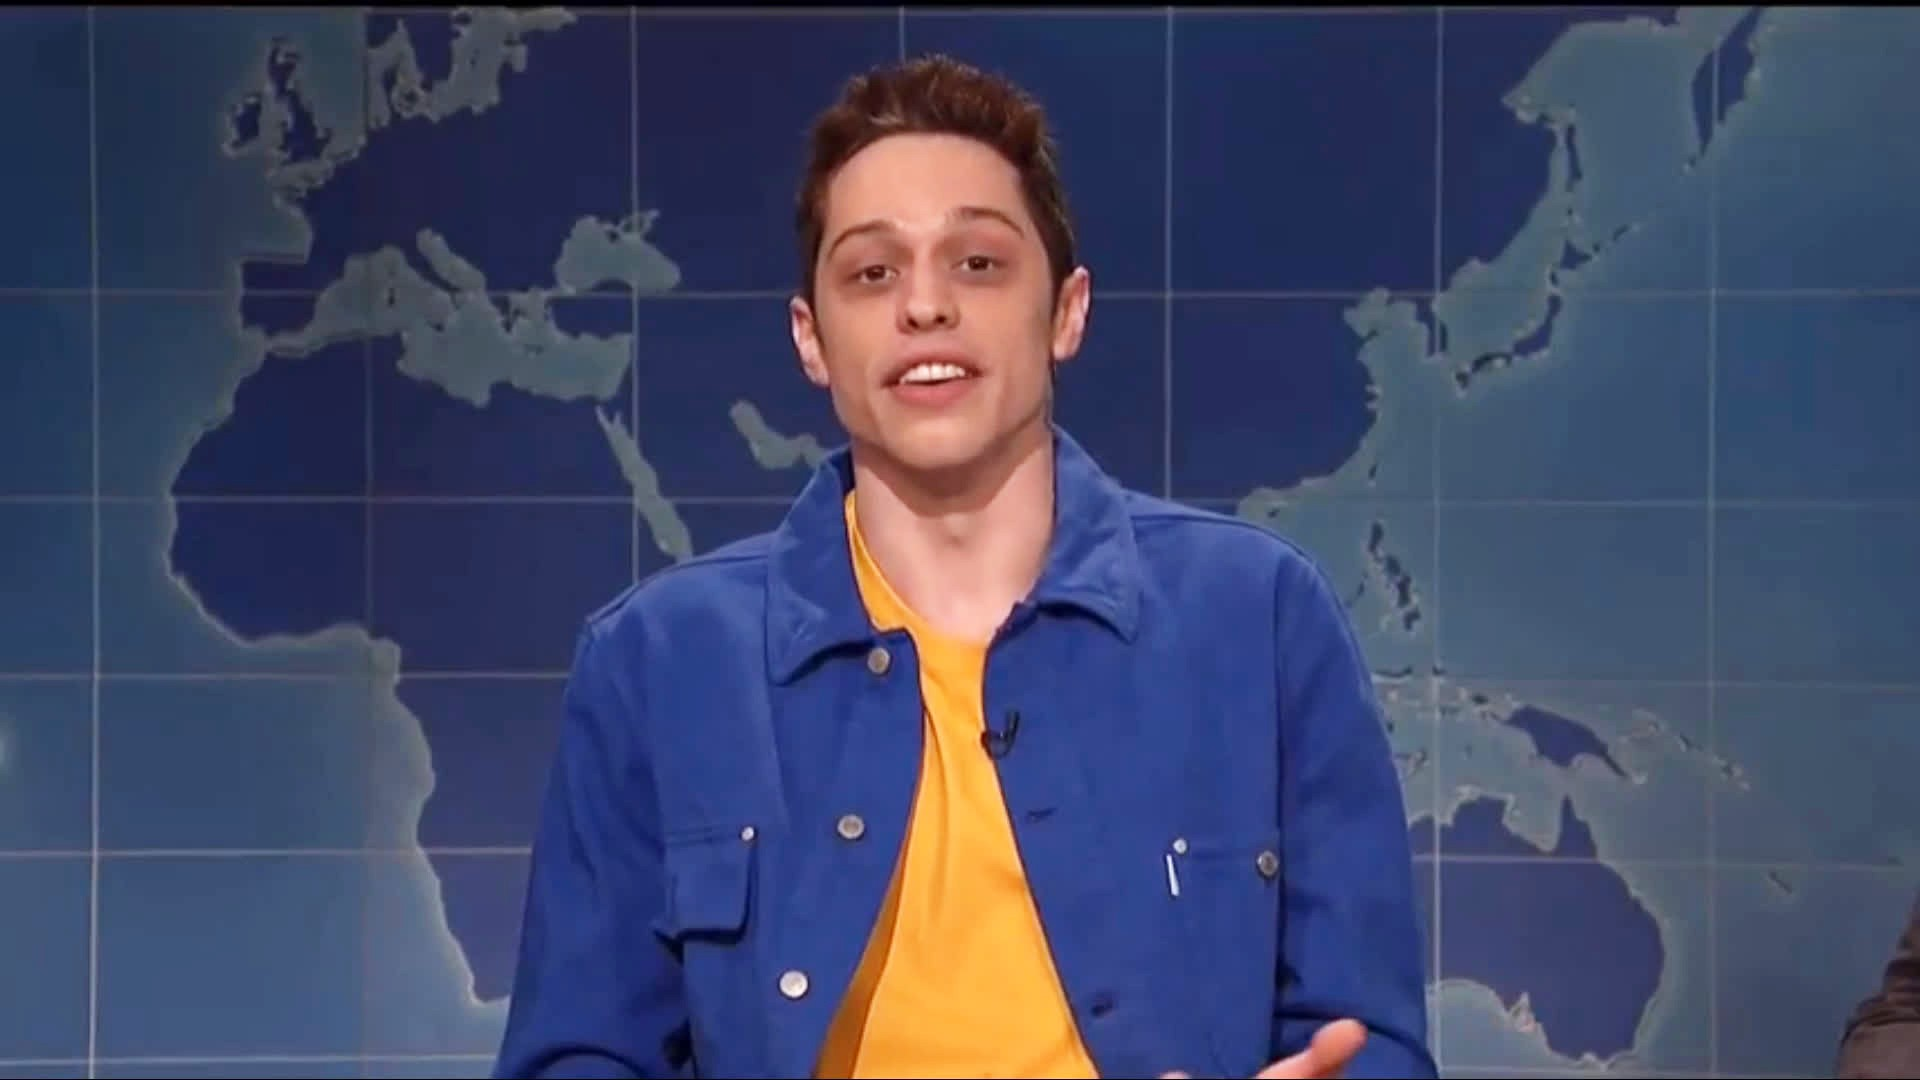 Pete Davidson durante segmento do Saturday Night Live (Foto: Reprodução)